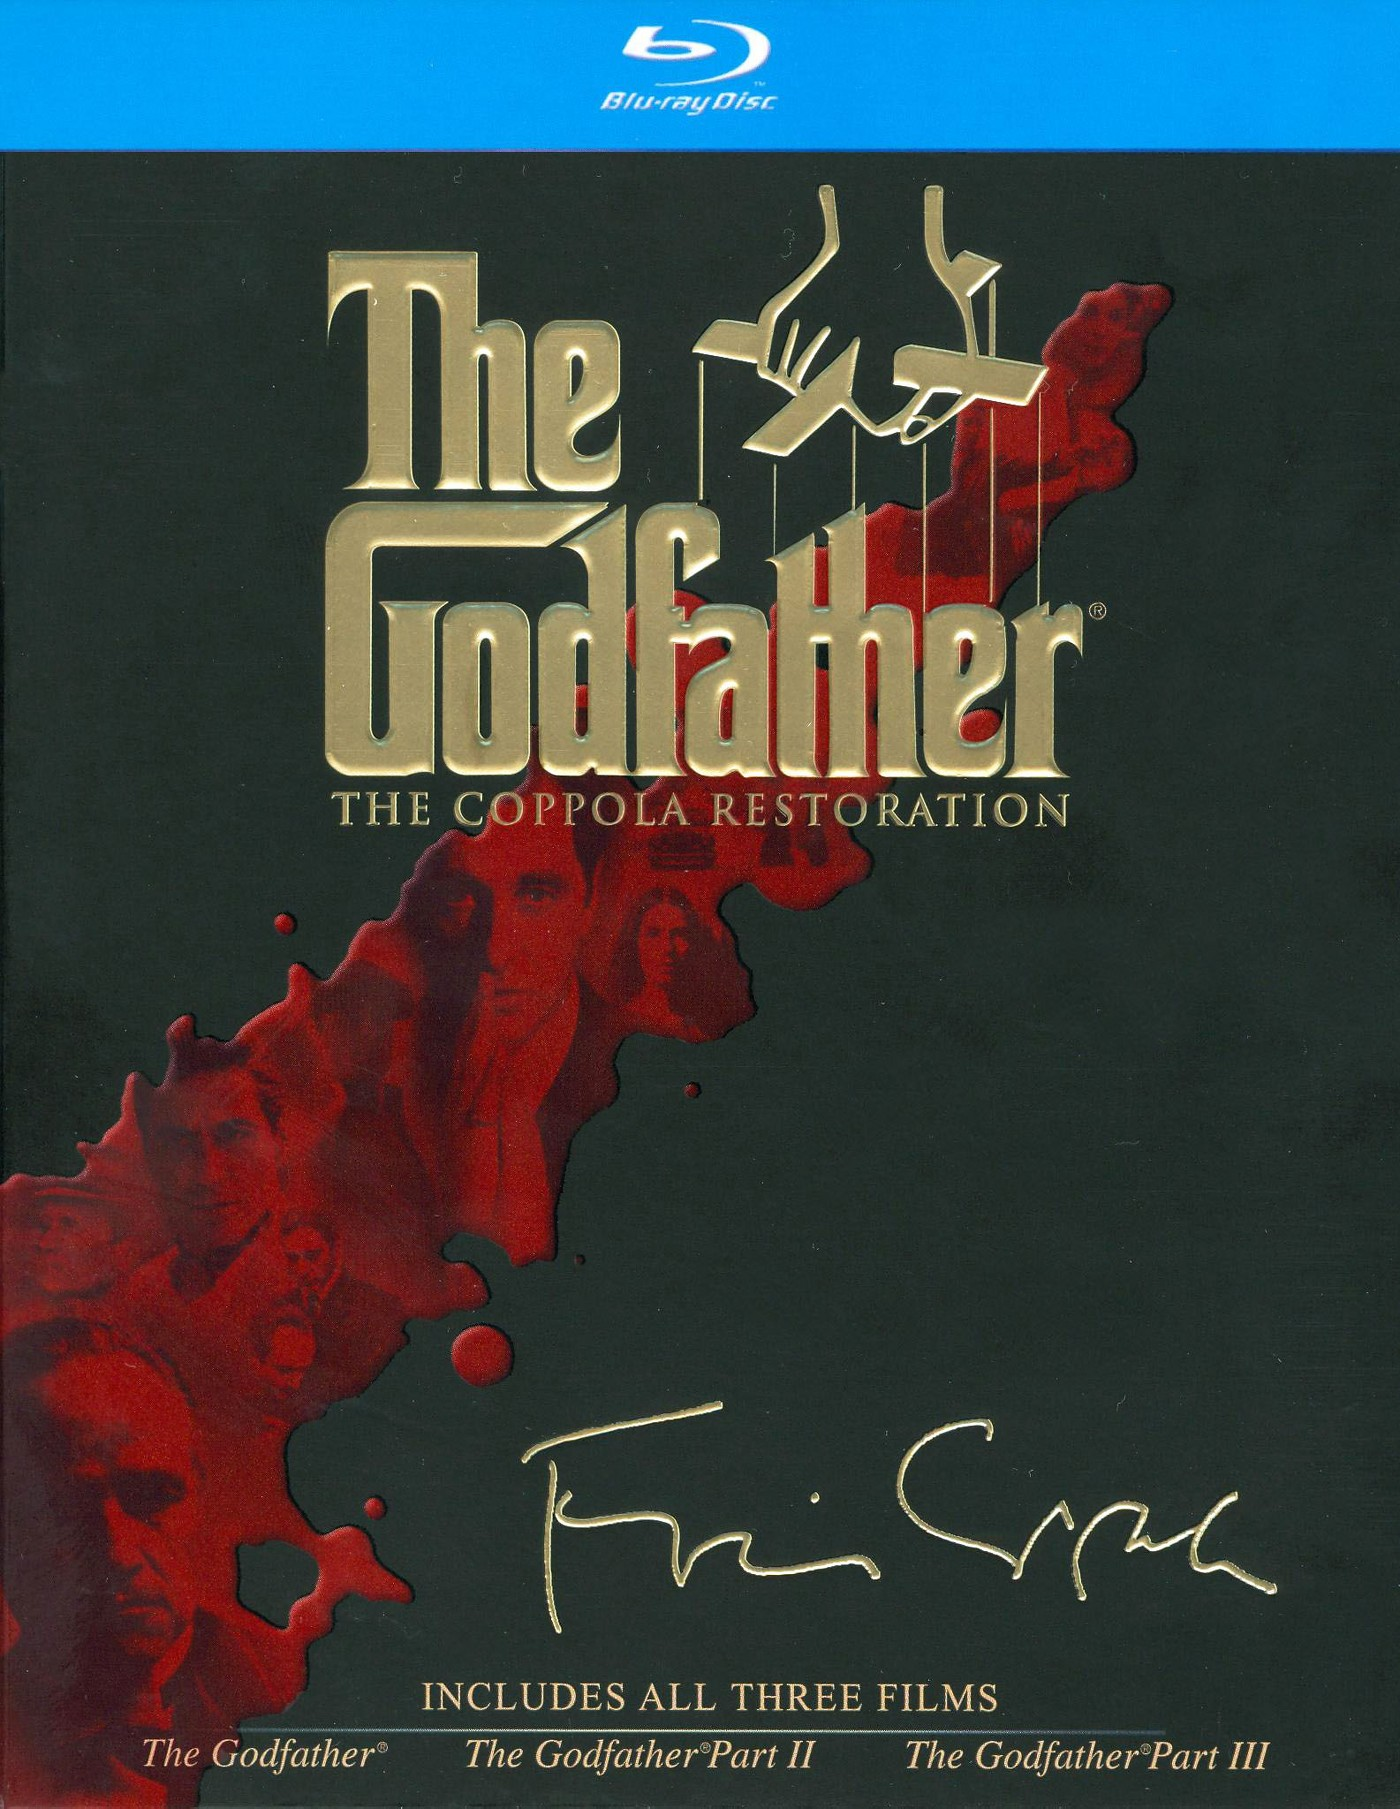 The Godfather Collection [Coppola Restoration] [4 Discs] [Blu-ray] - image 1 of 1